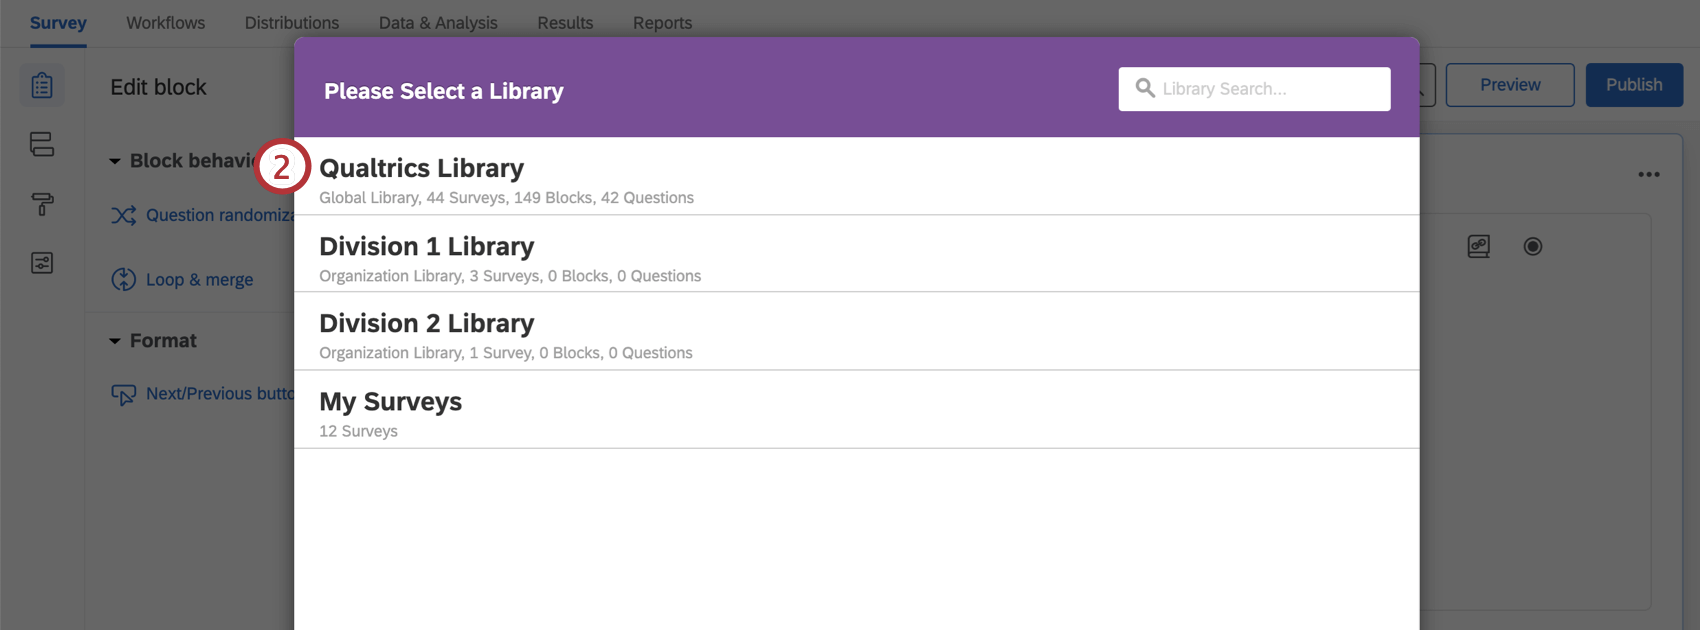 Selecting Qualtrics Library within import menu